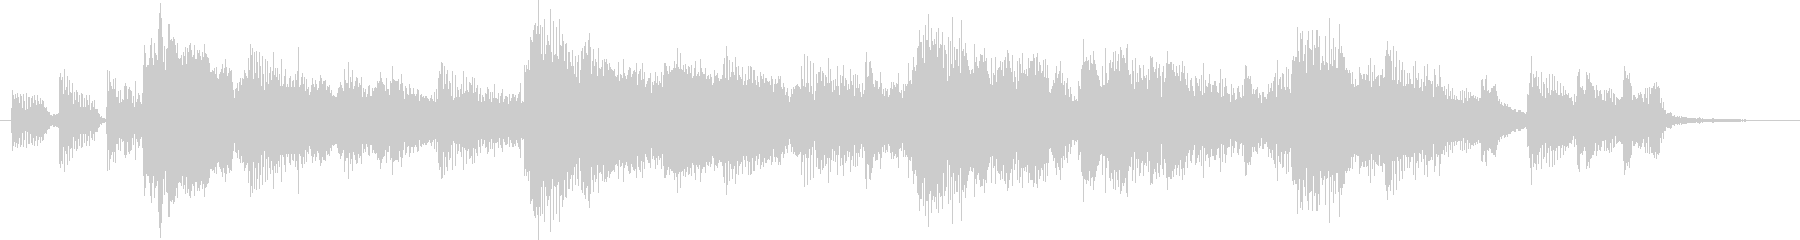 Western country style country jingle's unreproduced waveform